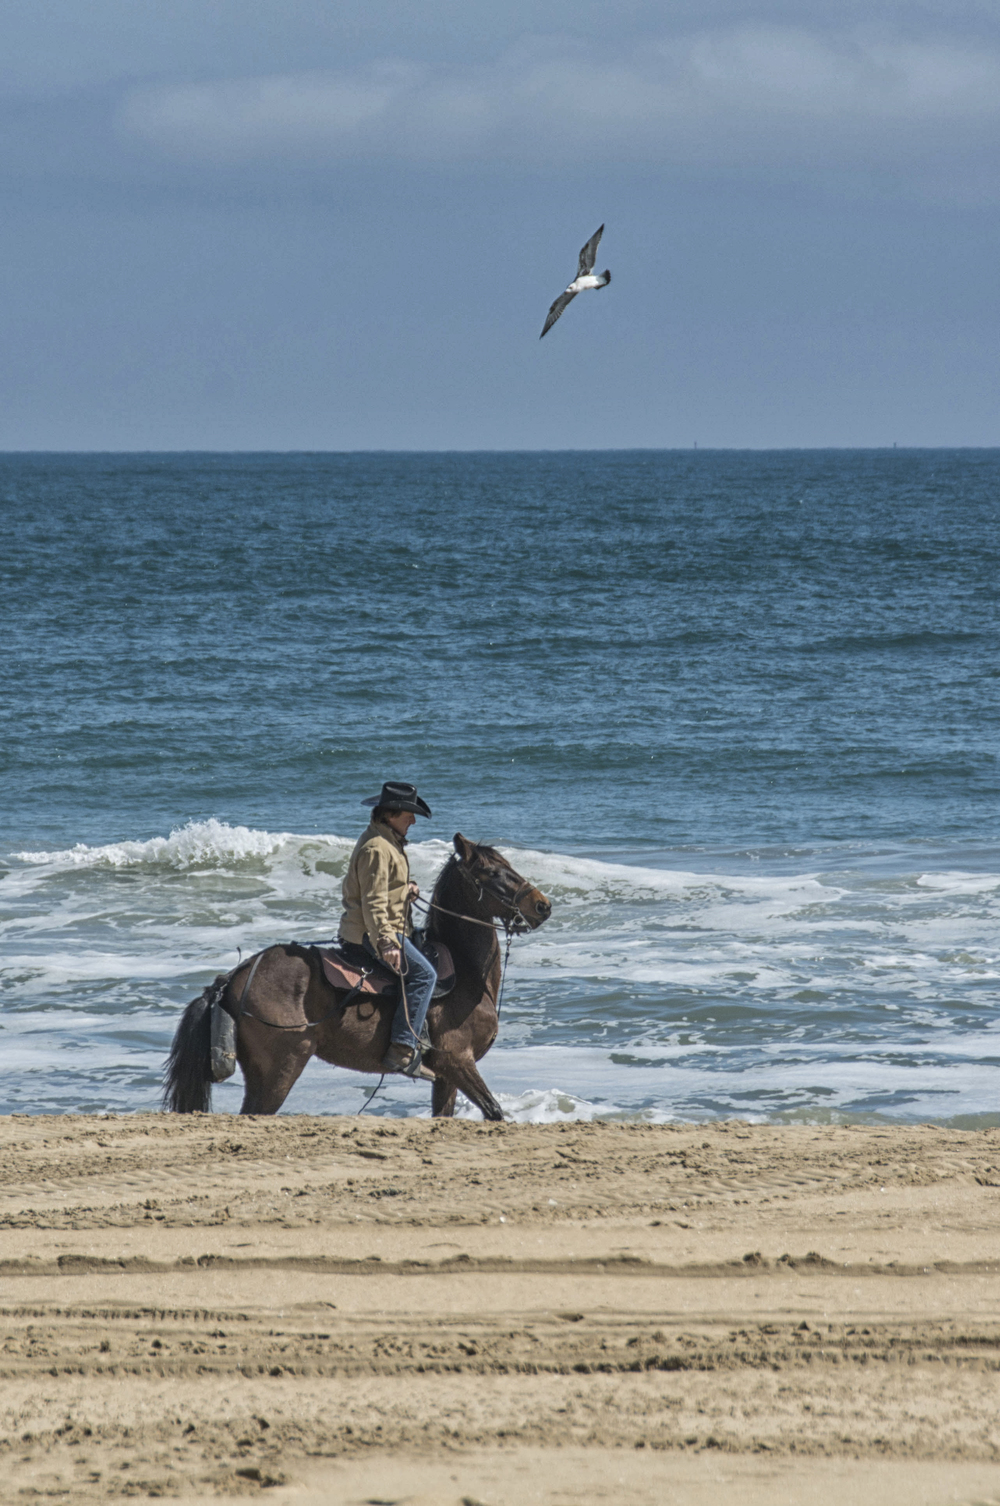 Horse and rider in surf